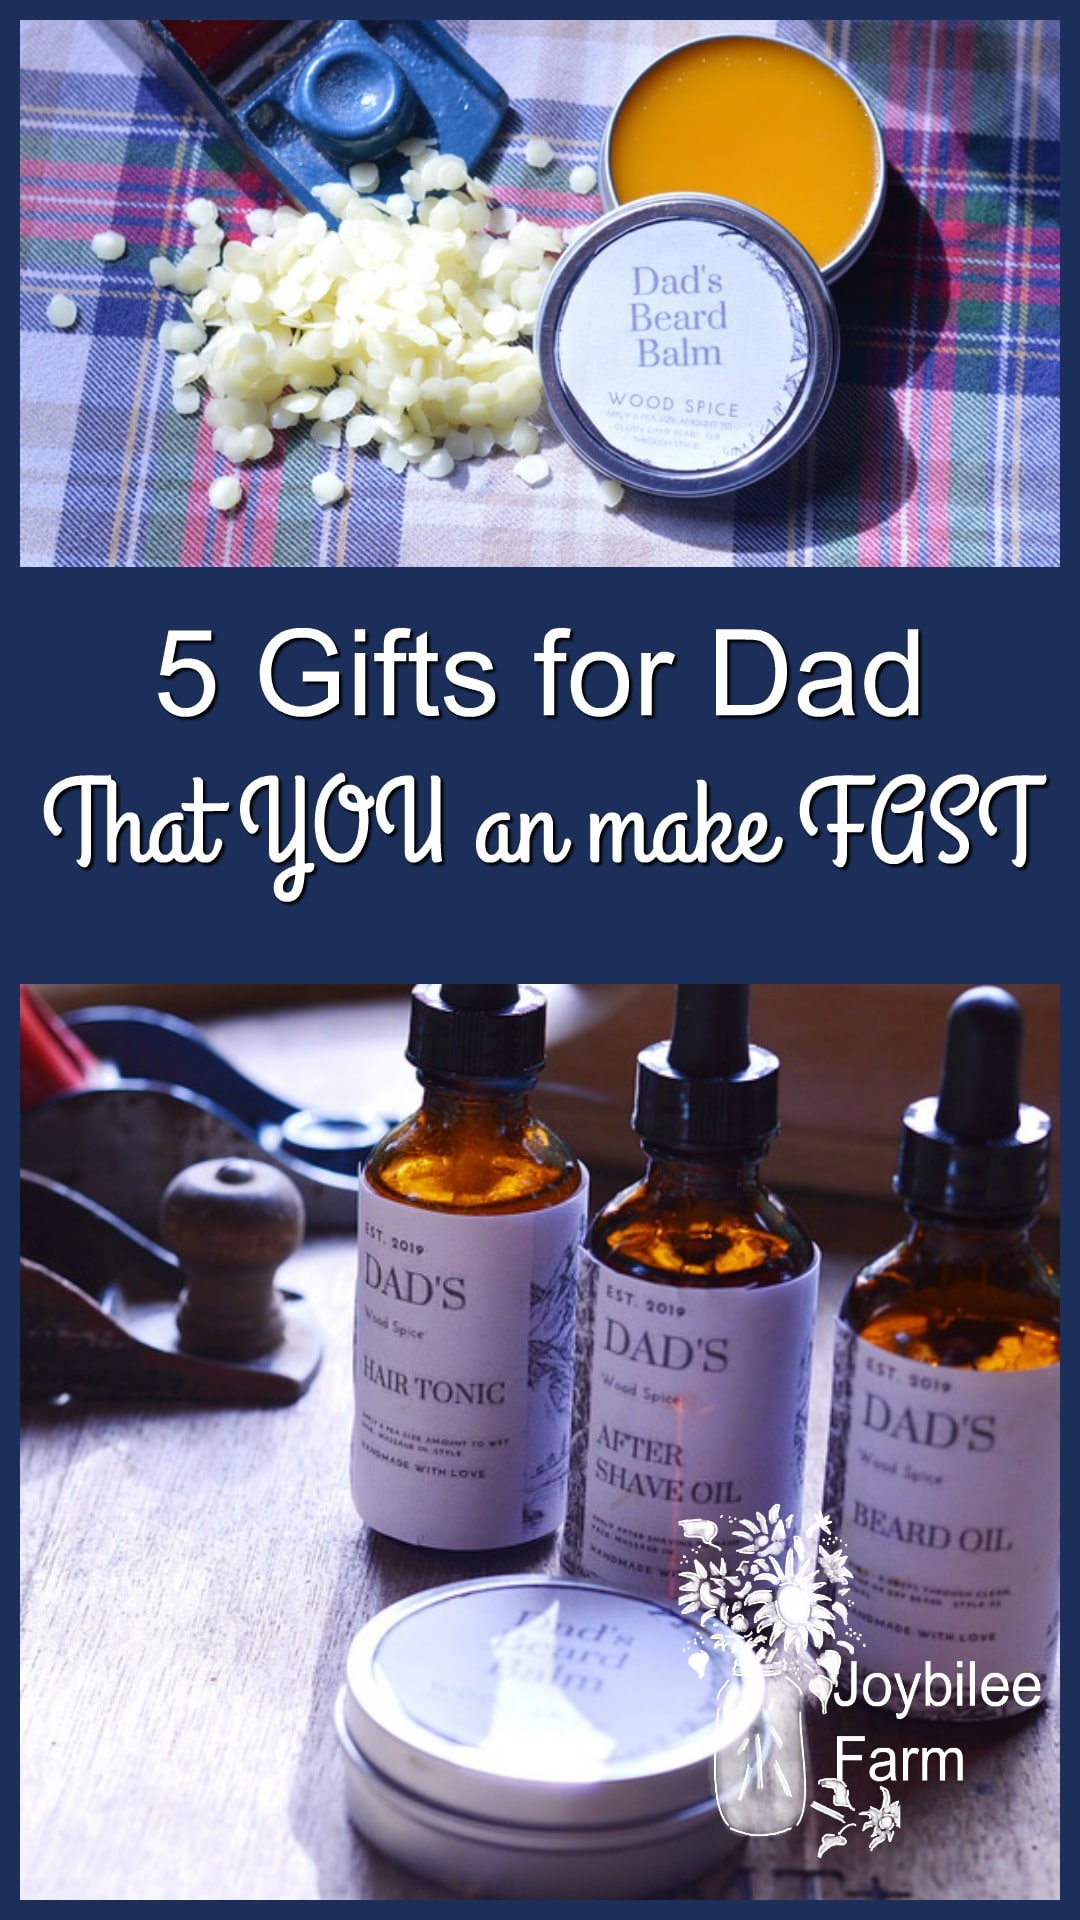 5 Gifts for Dad That You Can Make Fast | Joybilee® Farm